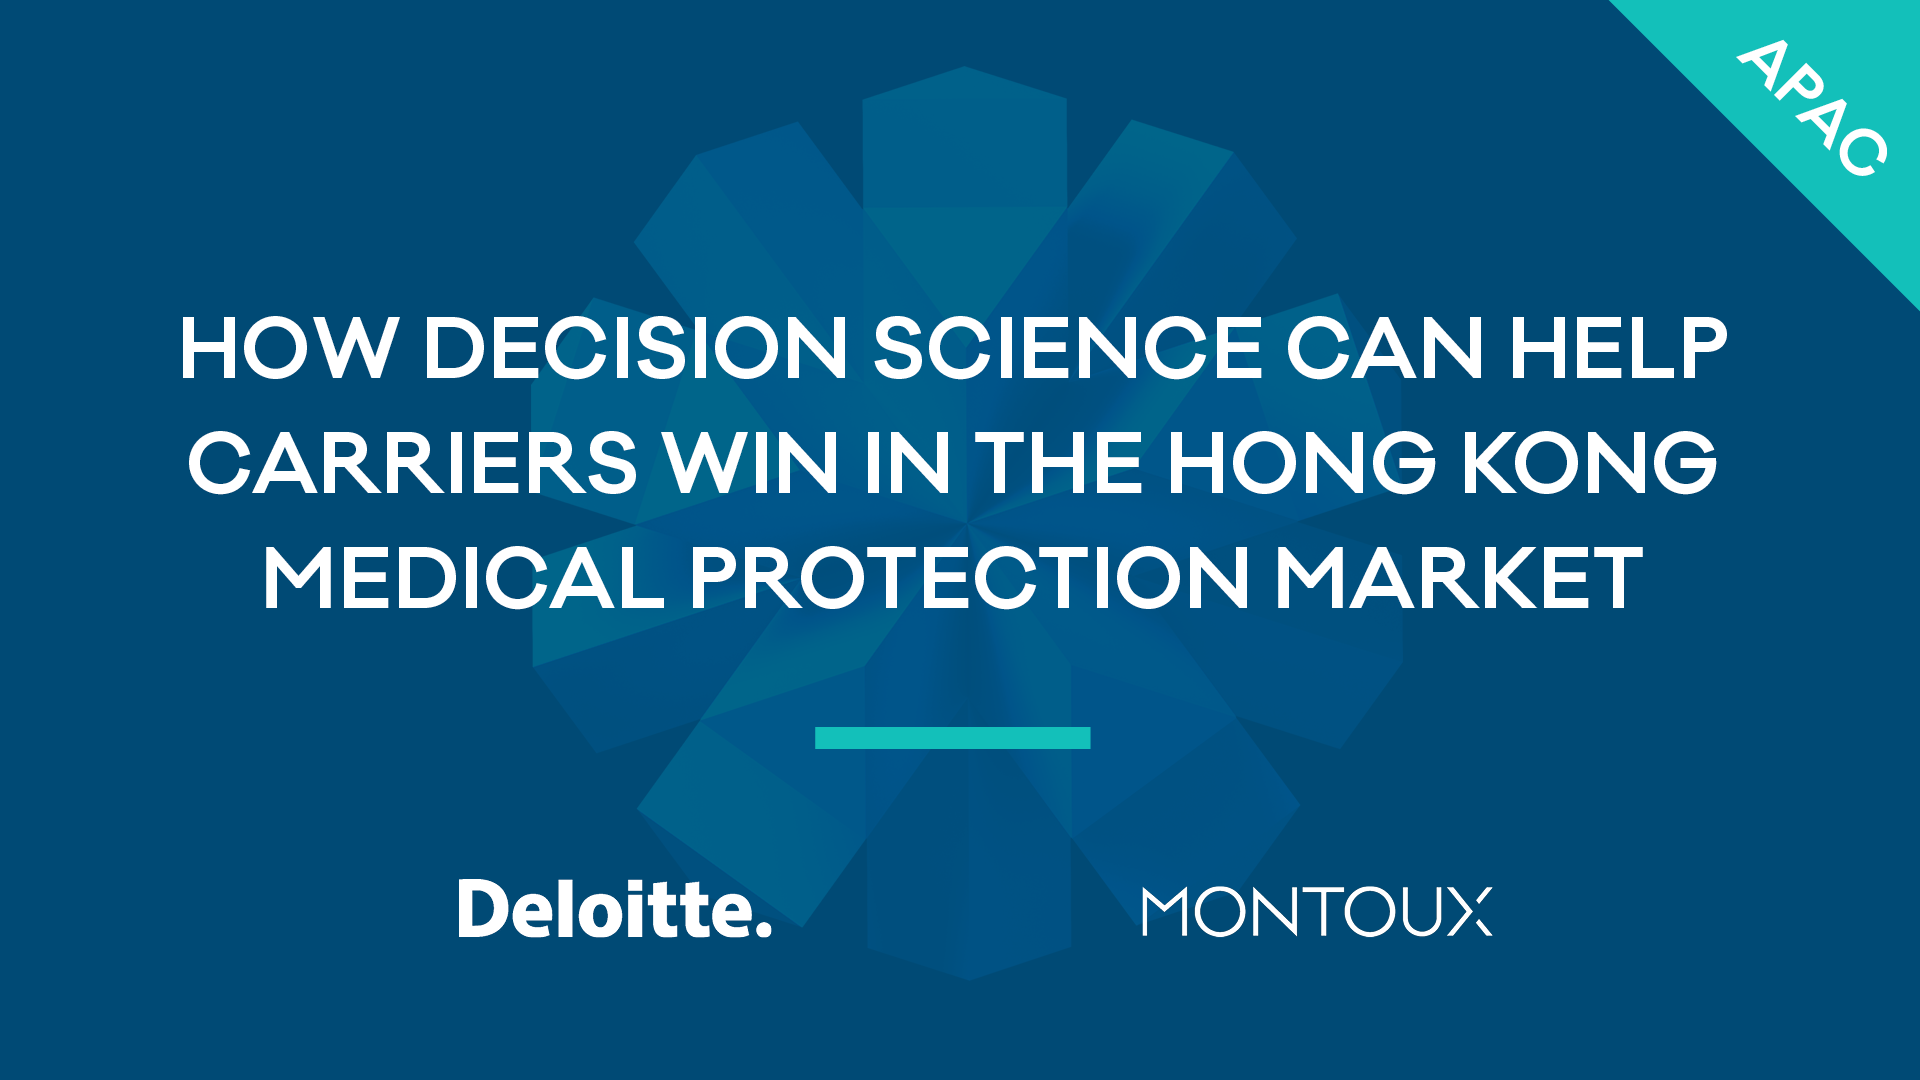 How Decision Science can help carriers win in the Hong Kong Medical Protection market